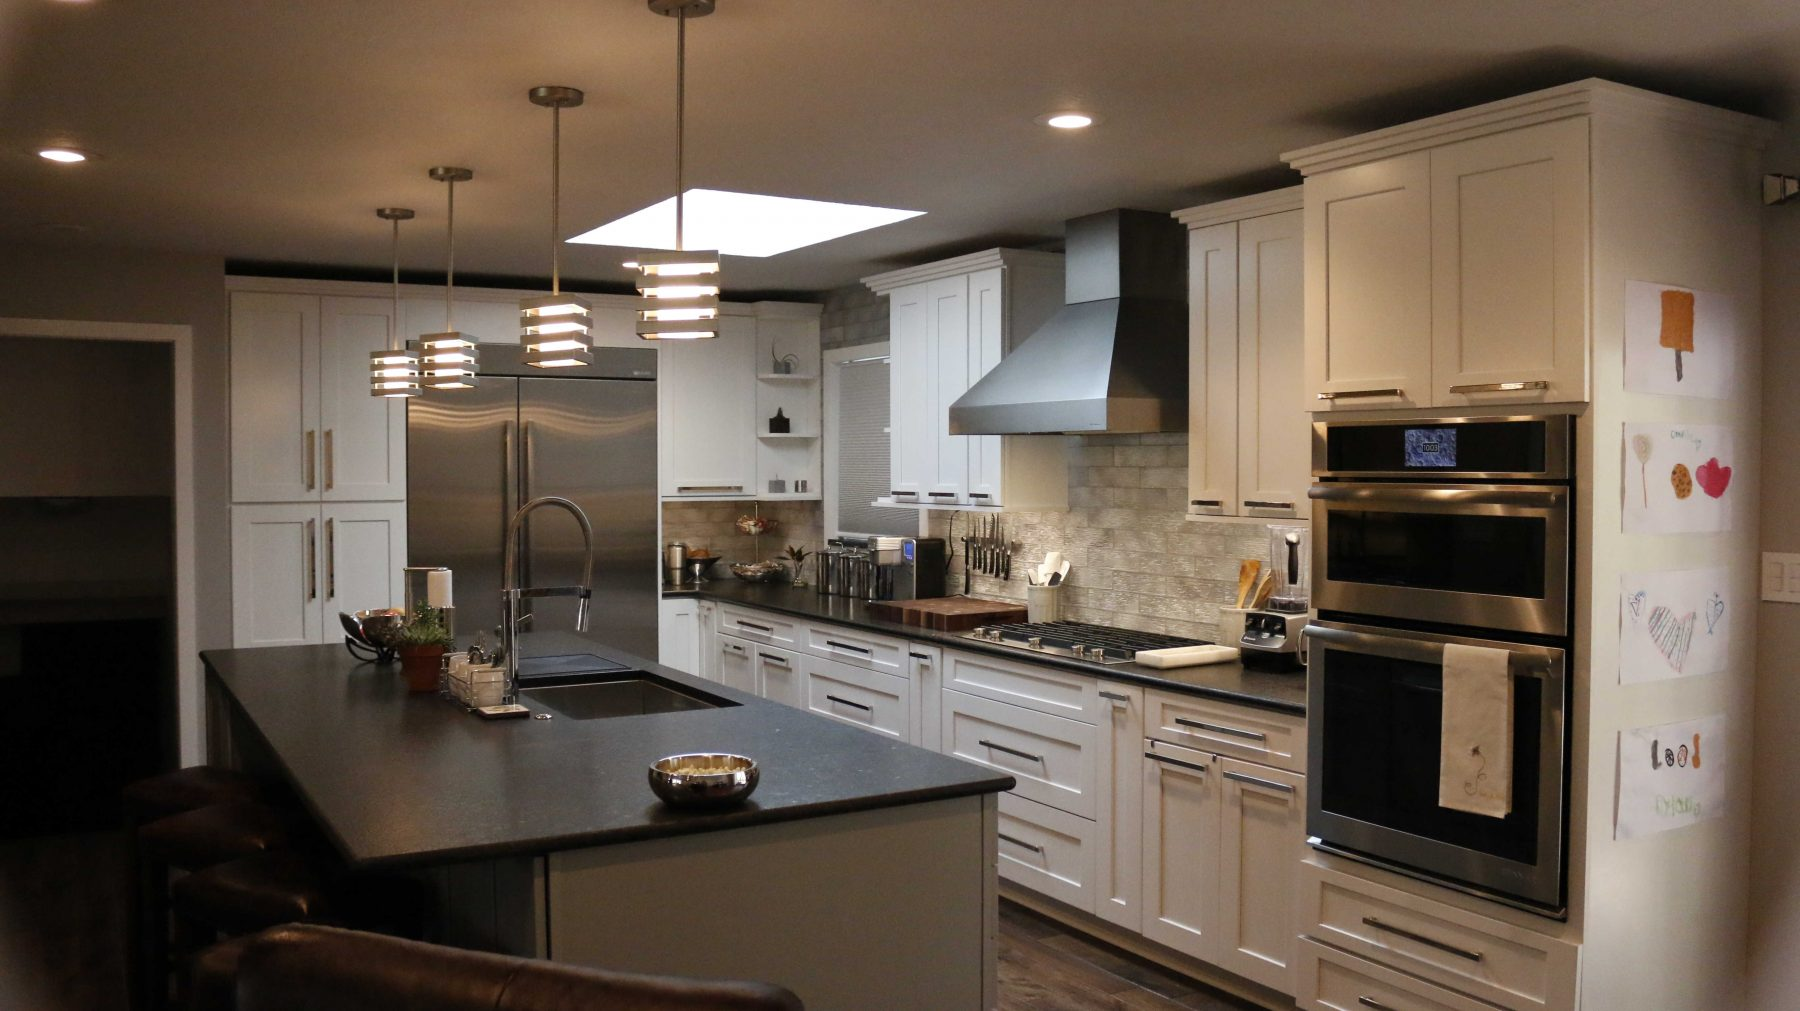 Standard kitchen bath kitchen remodeling knoxville for Kitchen remodel knoxville tn